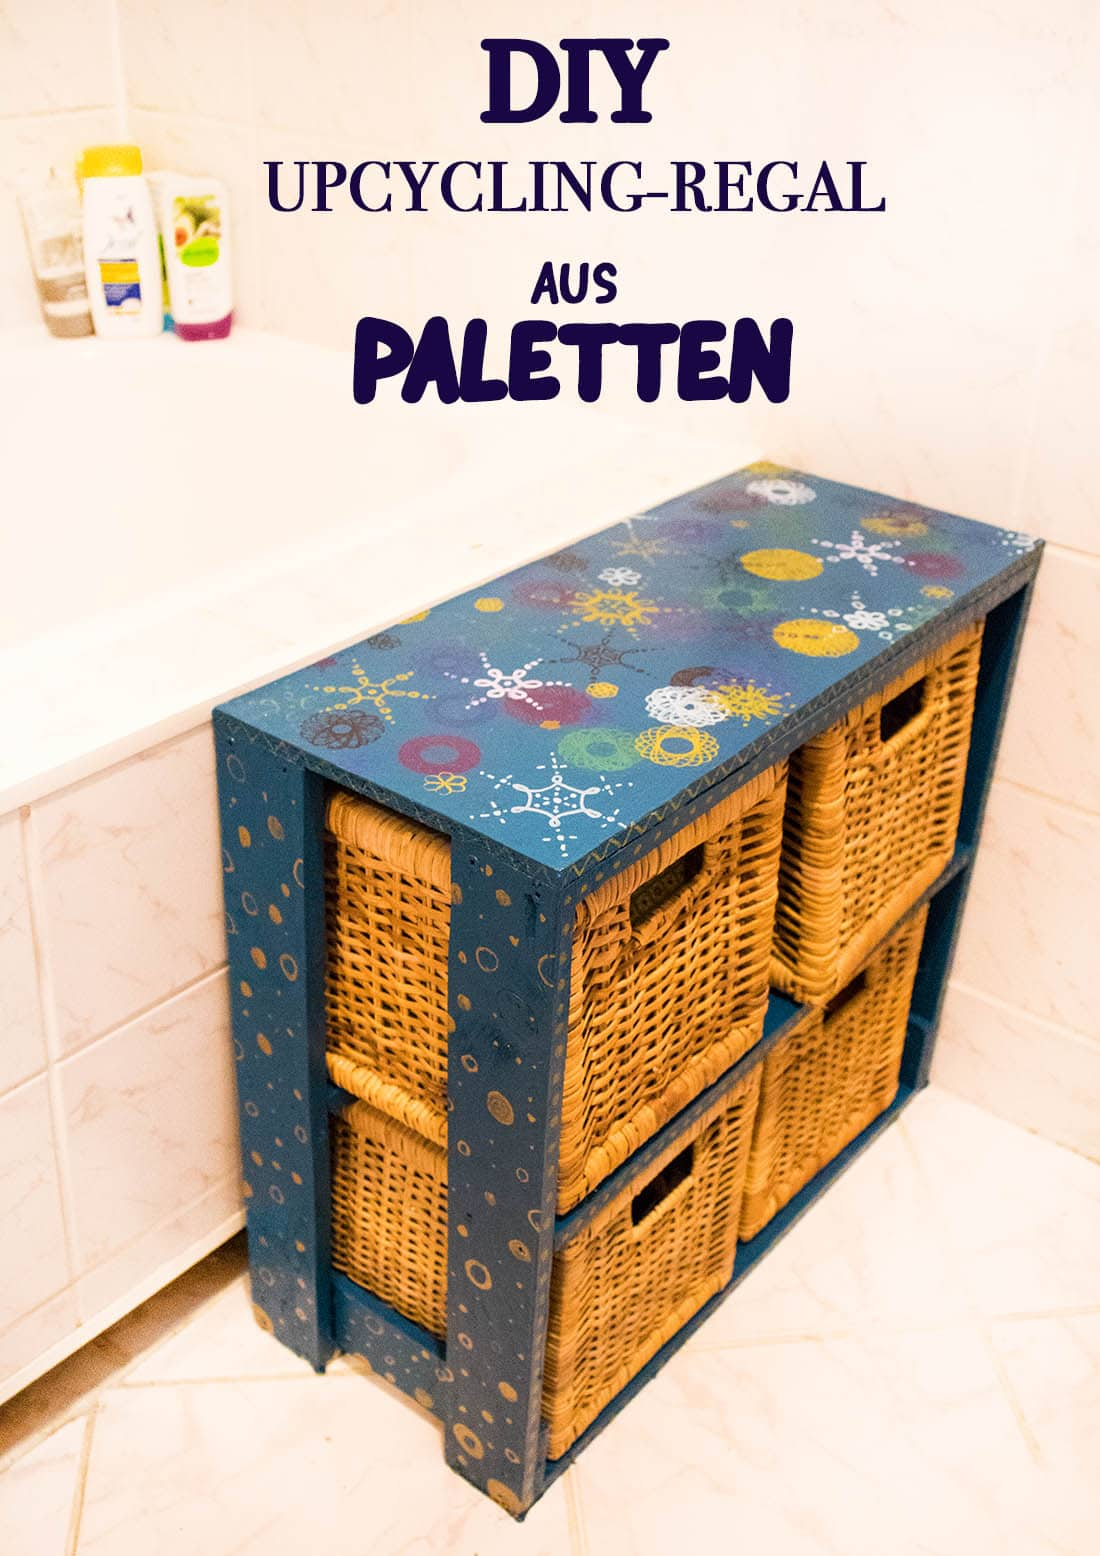 Upcycling Regal Aus Paletten Bauen Do It Yourself Diy Paletten